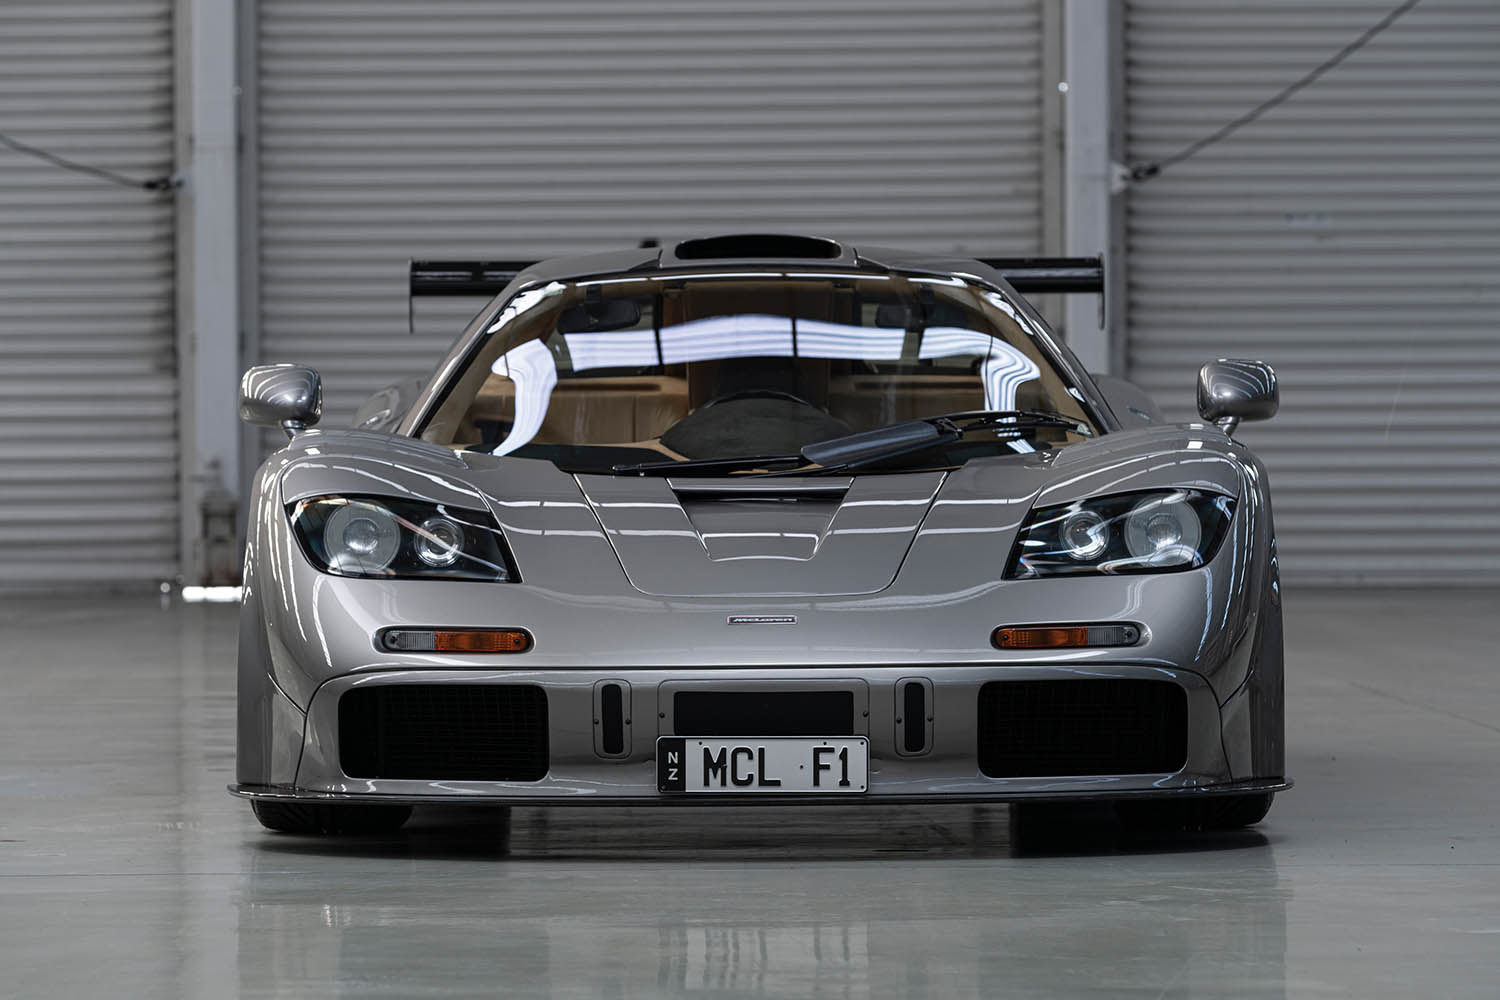 1994-McLaren-F1--LM-Specification--_6.jpg